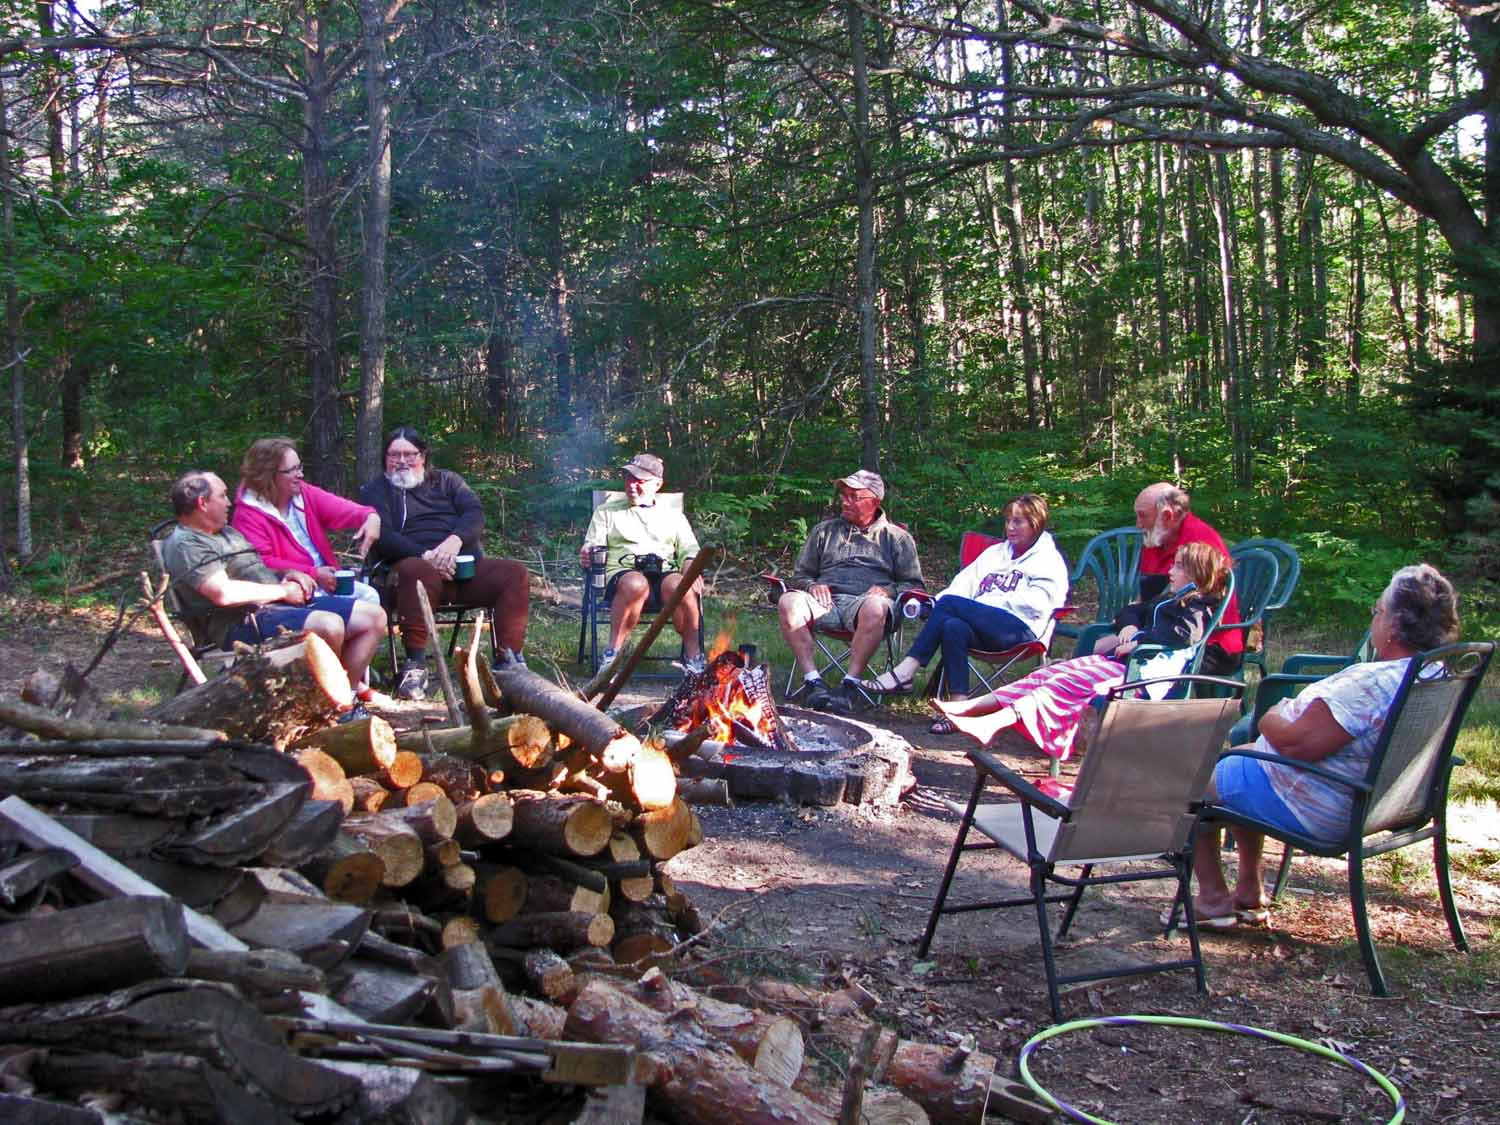 The group picks up around the fire for morning coffee